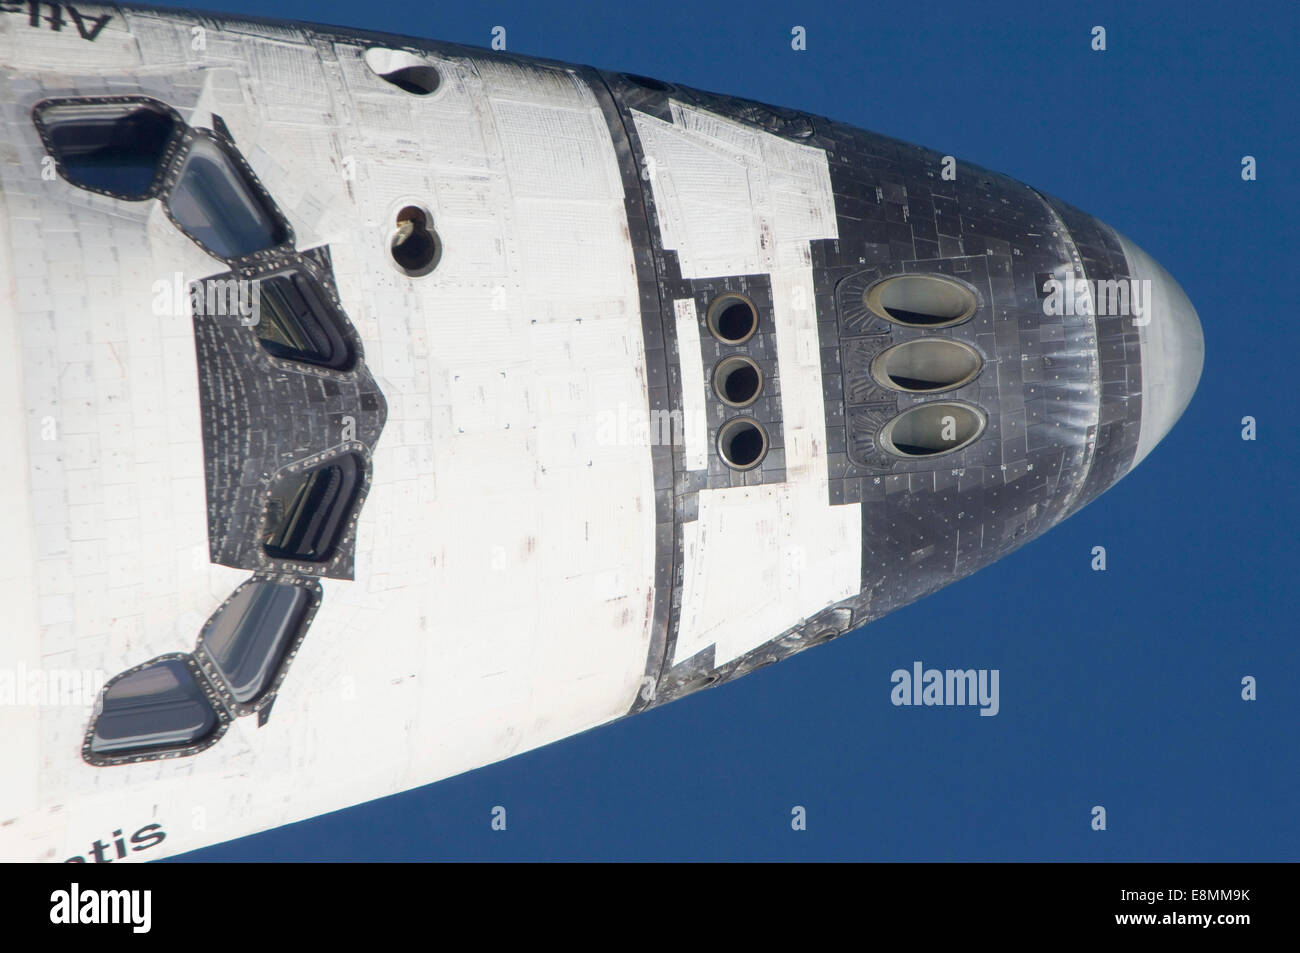 July 10, 2011 - Close-up of the front section of space shuttle Atlantis in Earth orbit. - Stock Image